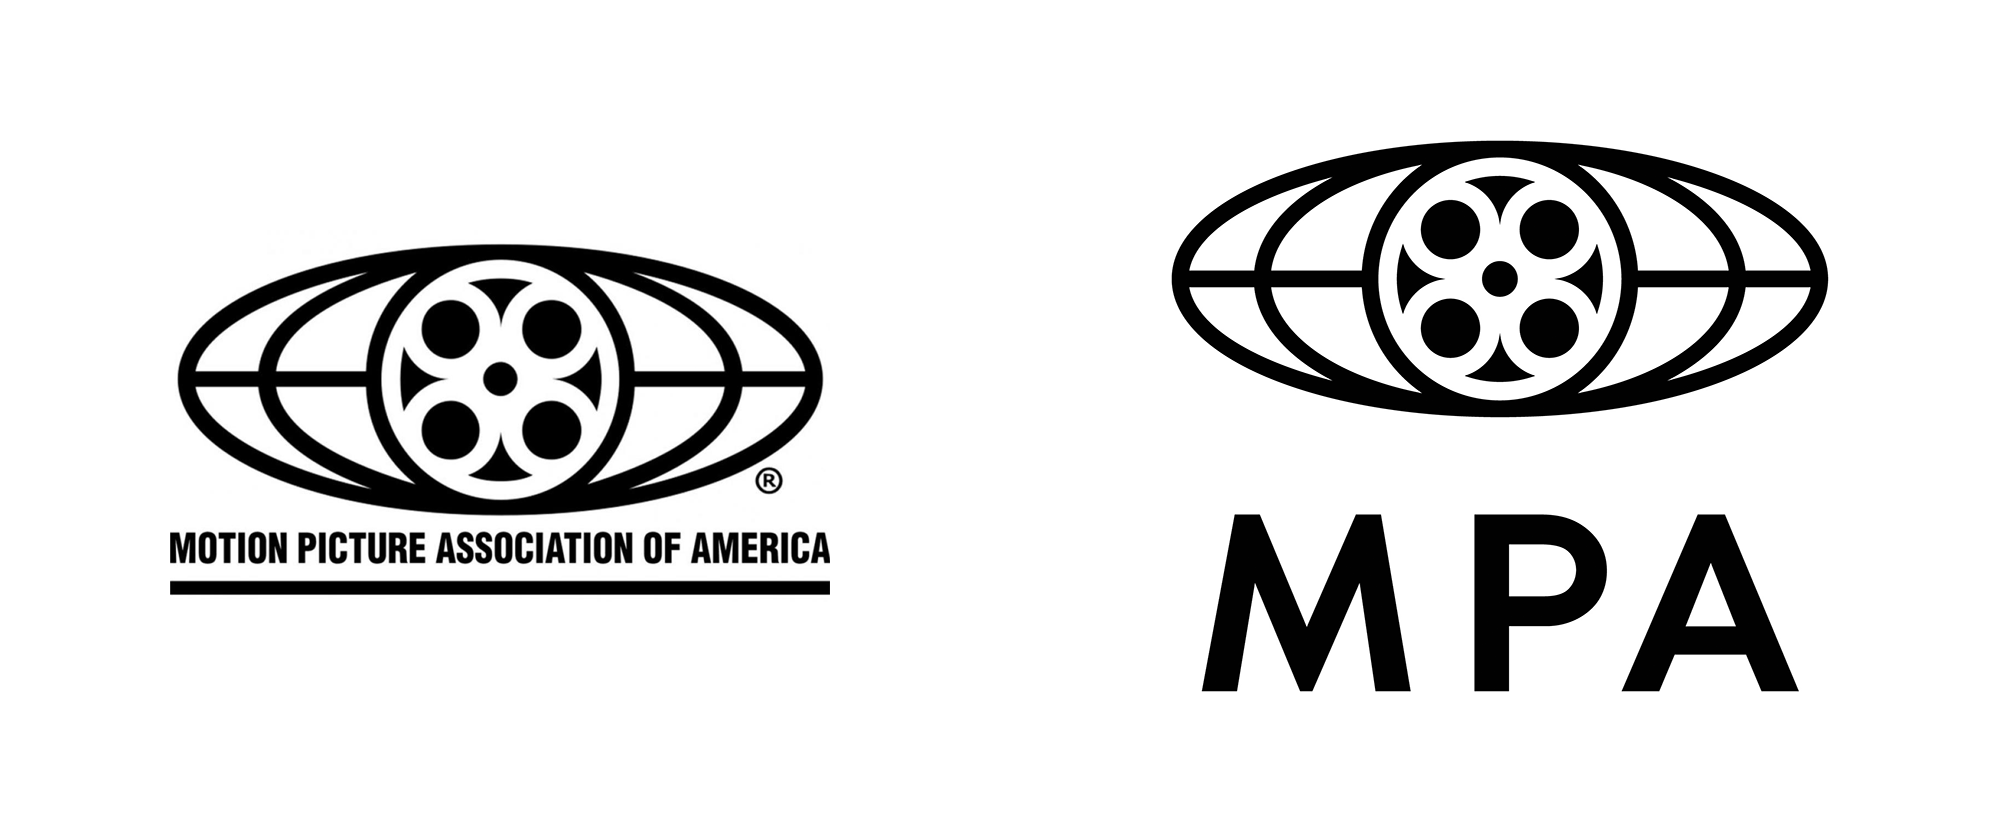 New Name and Logo for Motion Picture Association